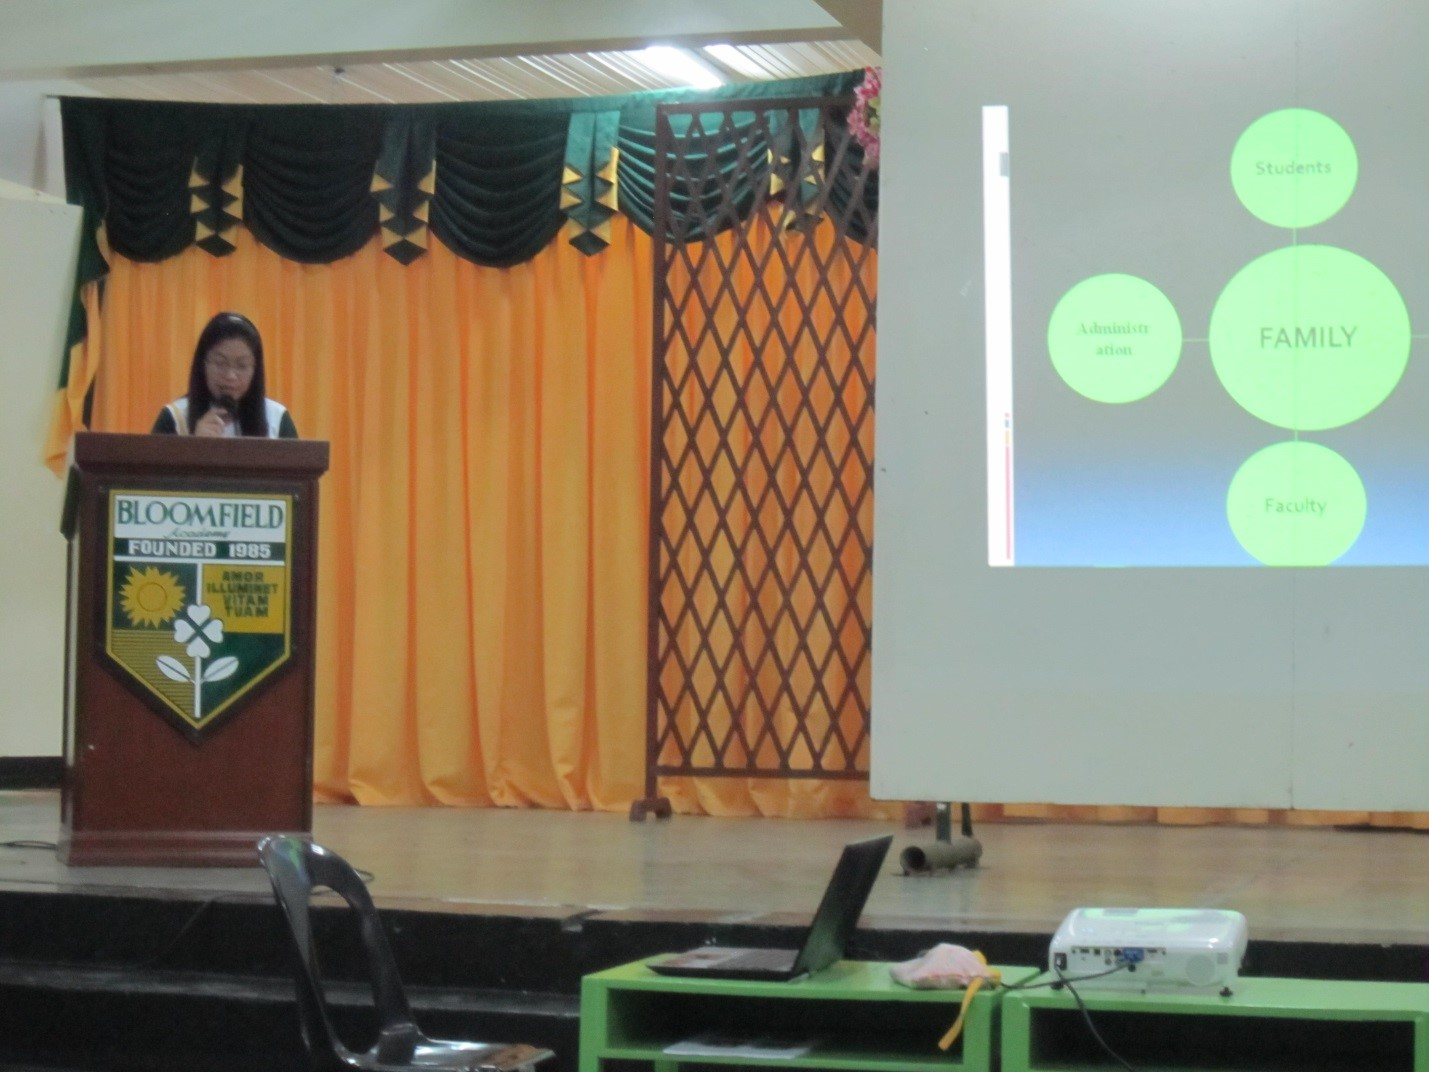 Ms. Thelma Marquez, the Student Affairs Coordinator, briefly discussed the PVM of the school.